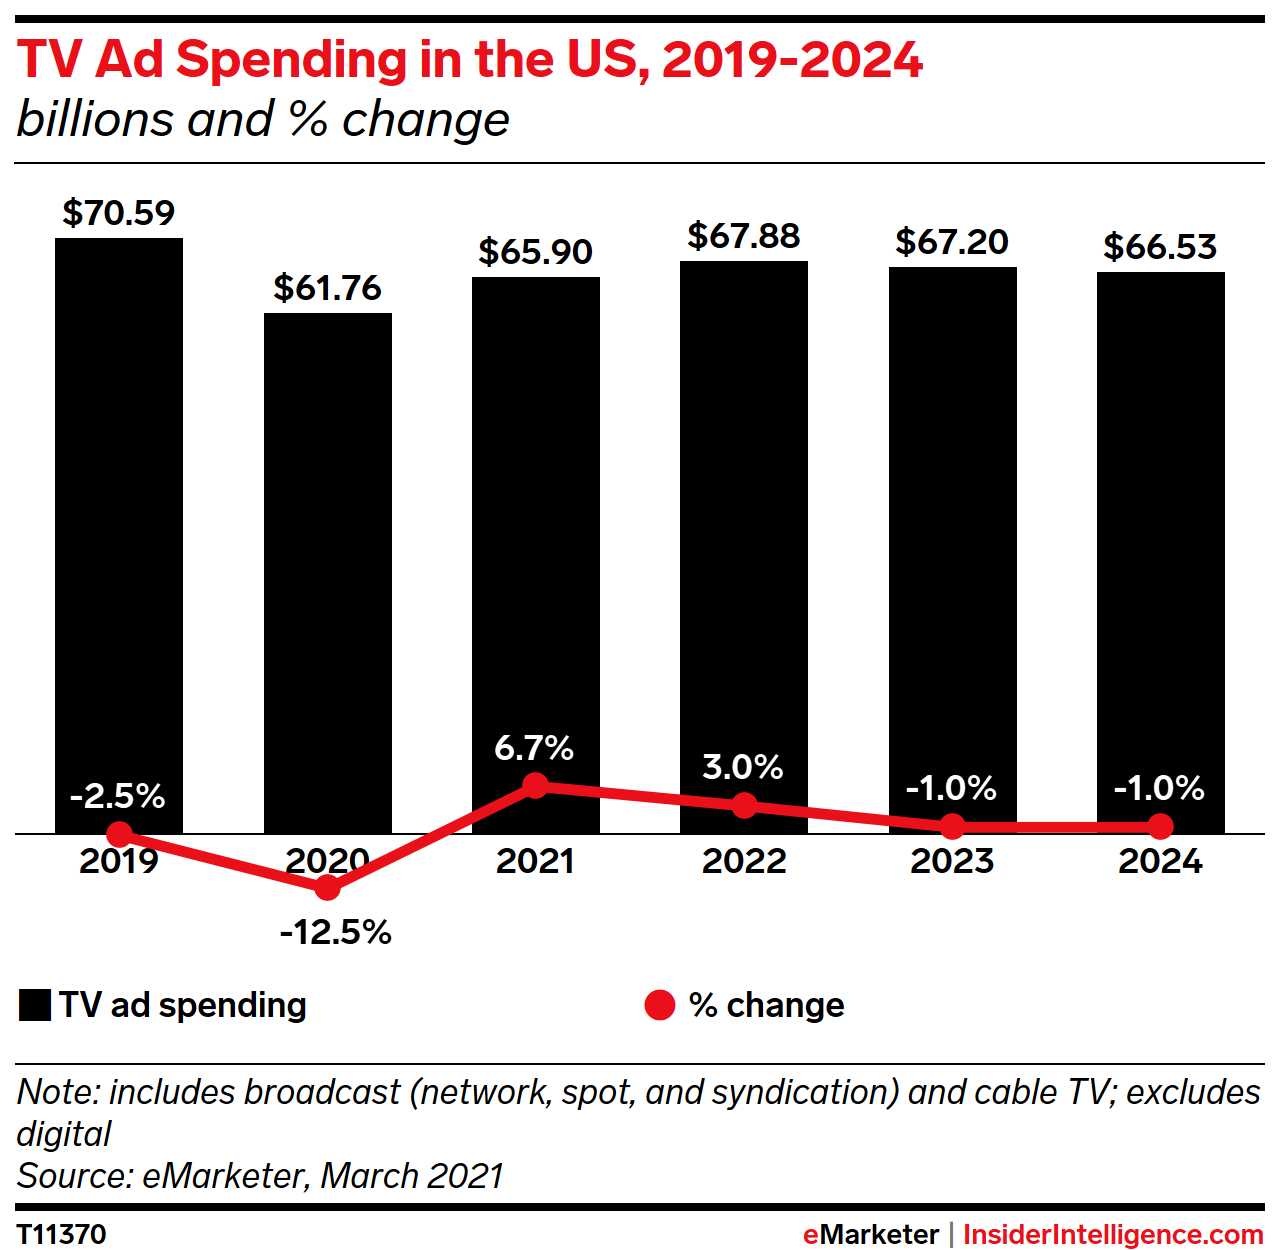 TV Ad Spending in the US, 2019-2024 (billions and % change)